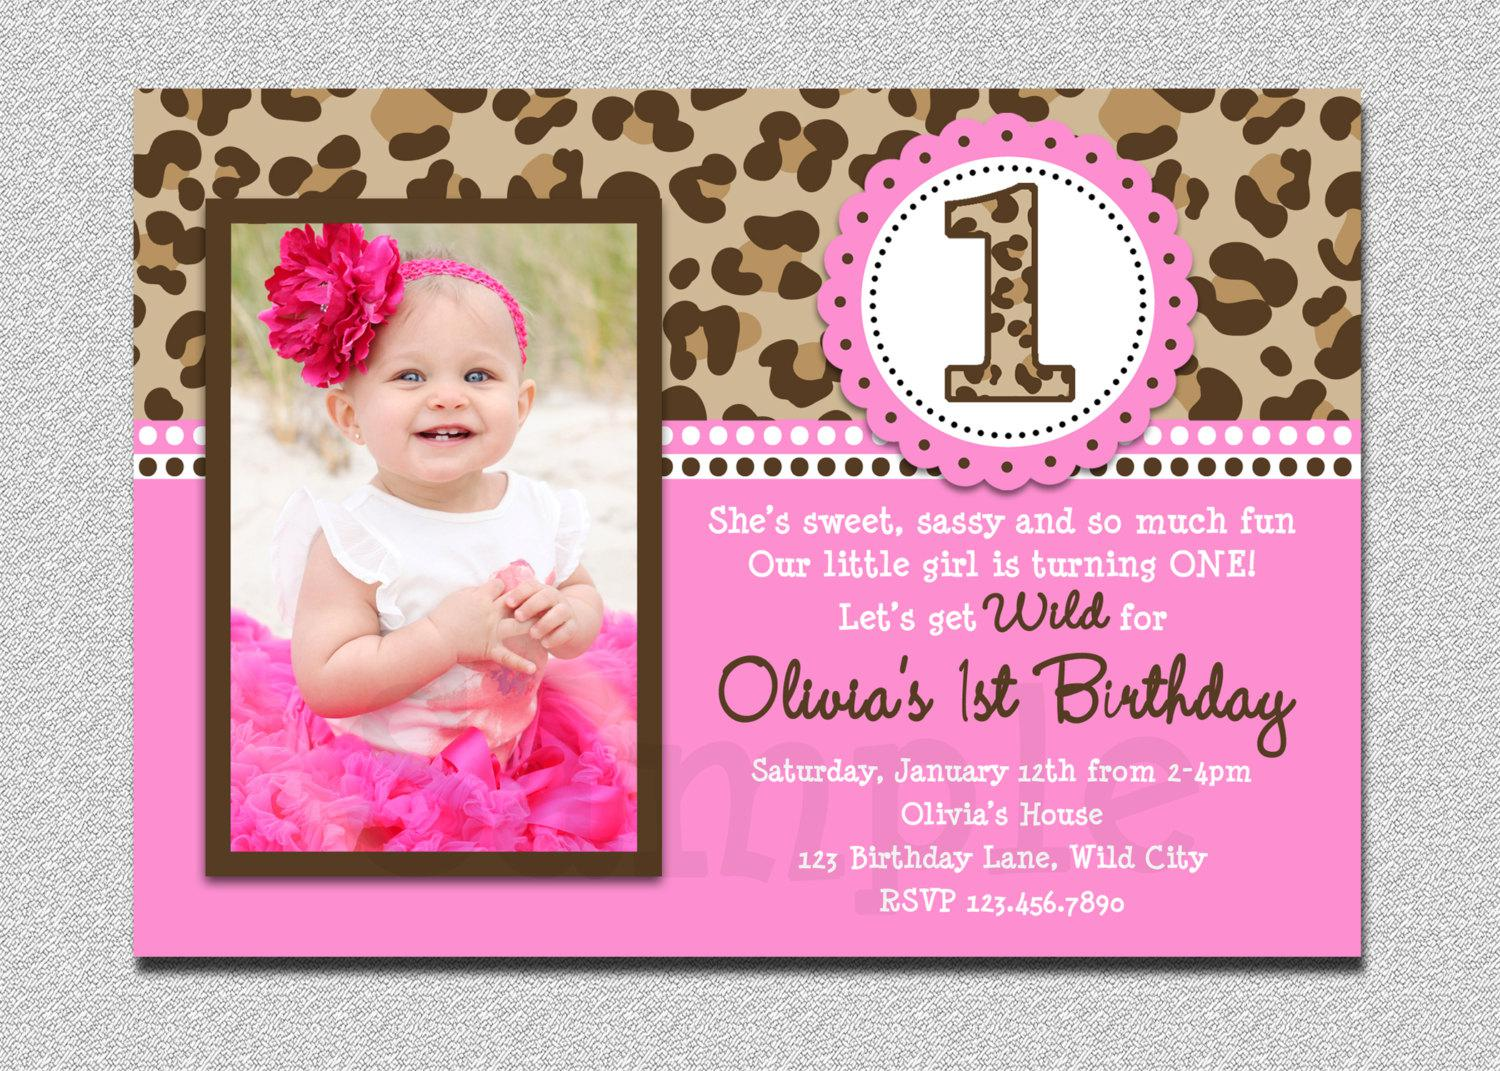 22+ Custom Birthday Invitations | Birthday Party Invitations Templates